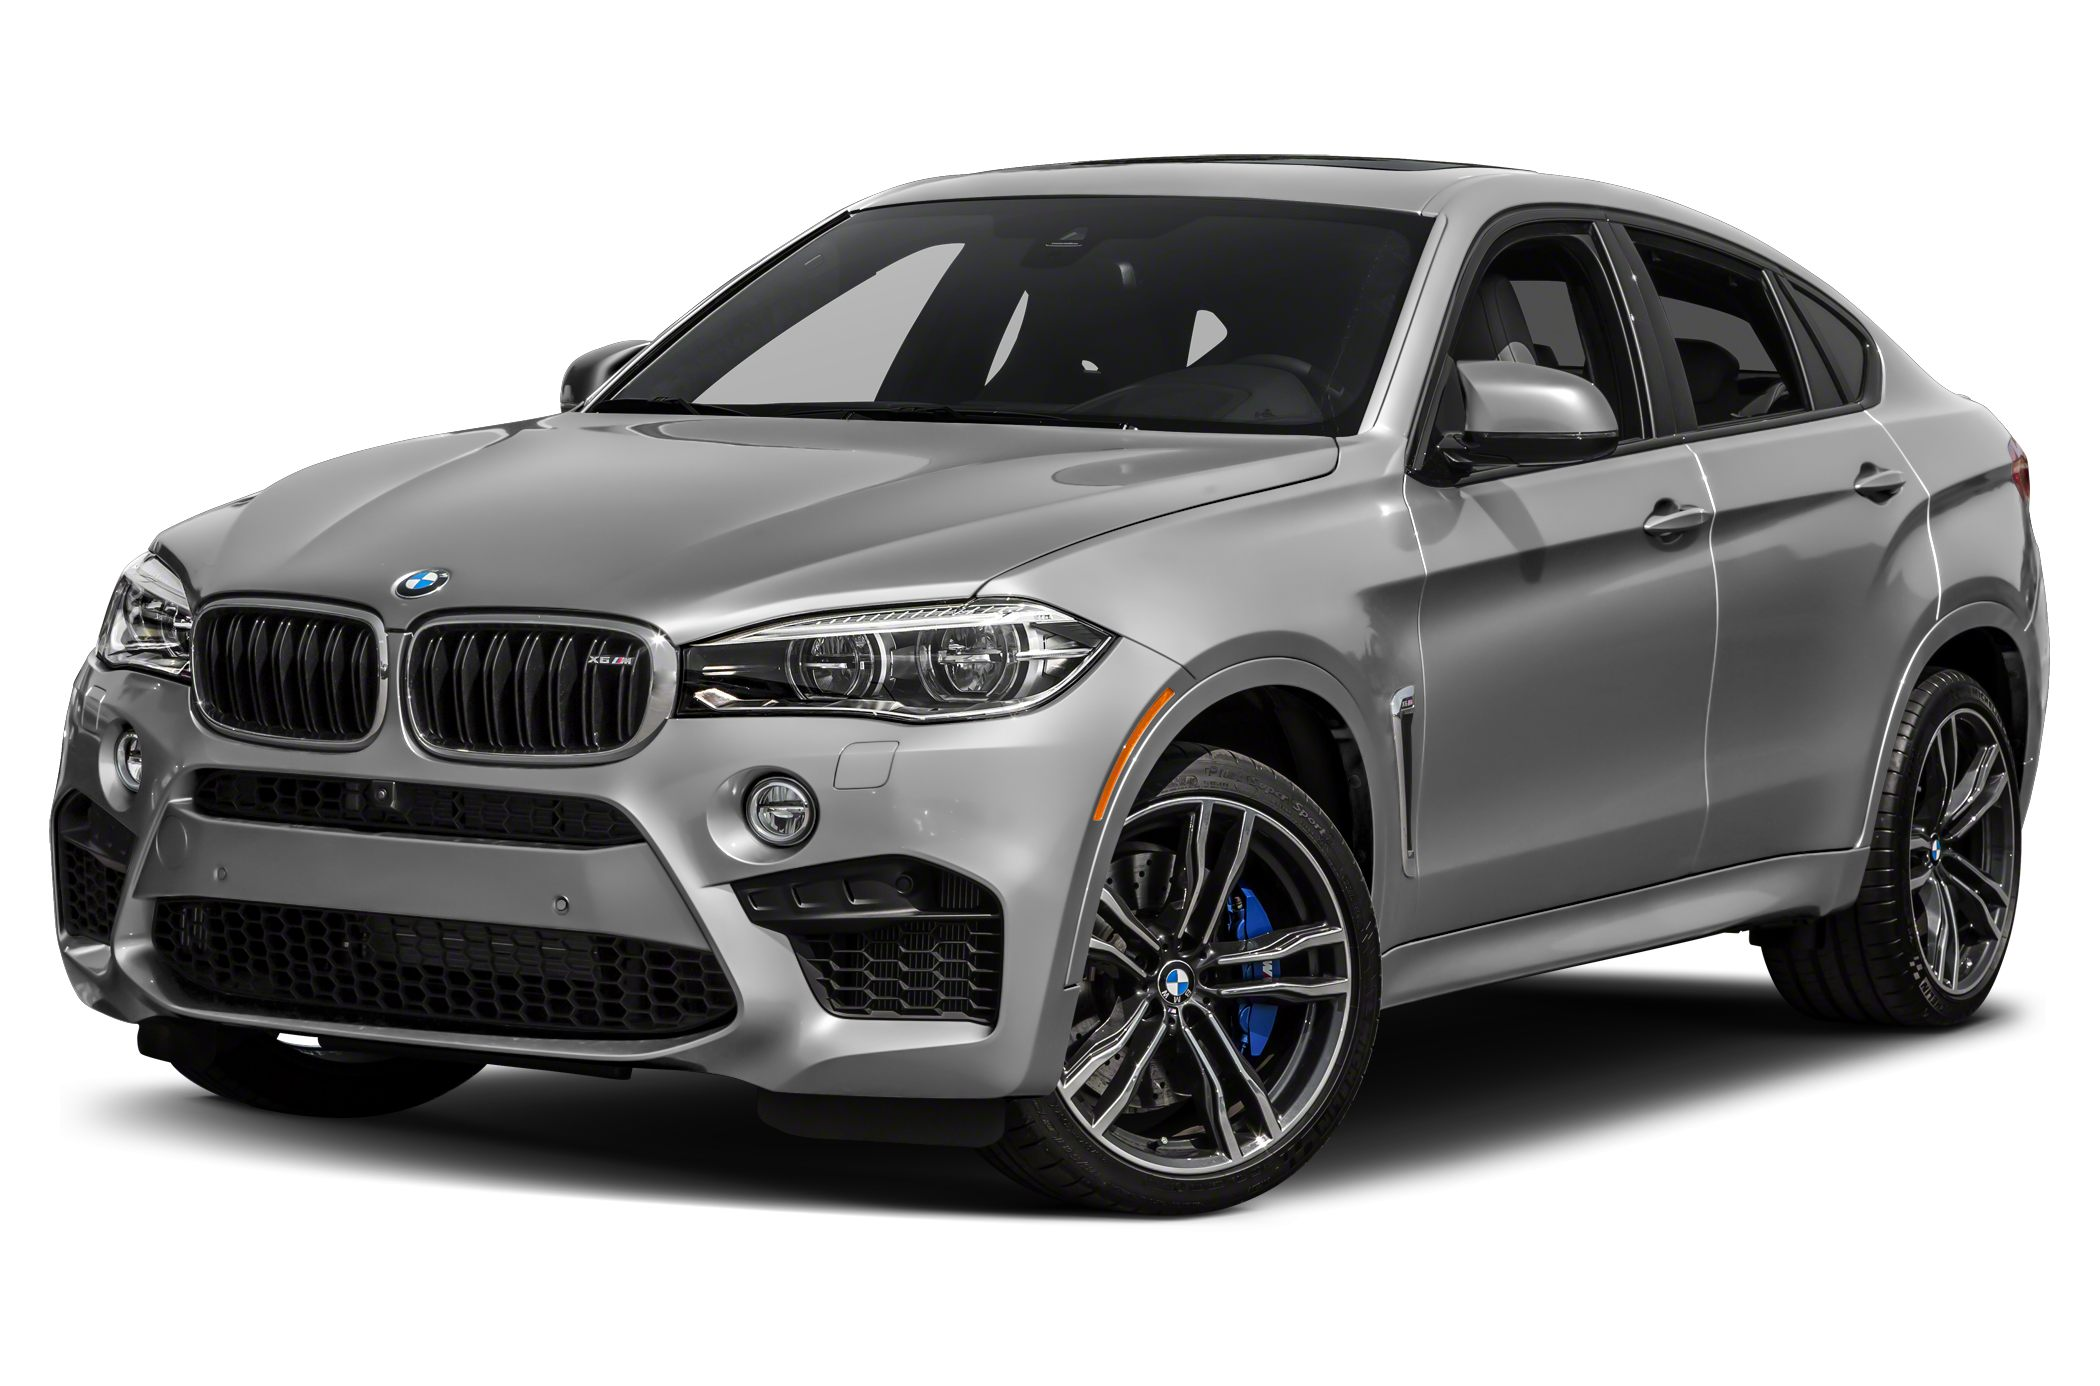 2015 Bmw X6 M Specs Safety Rating Amp Mpg Carsdirect